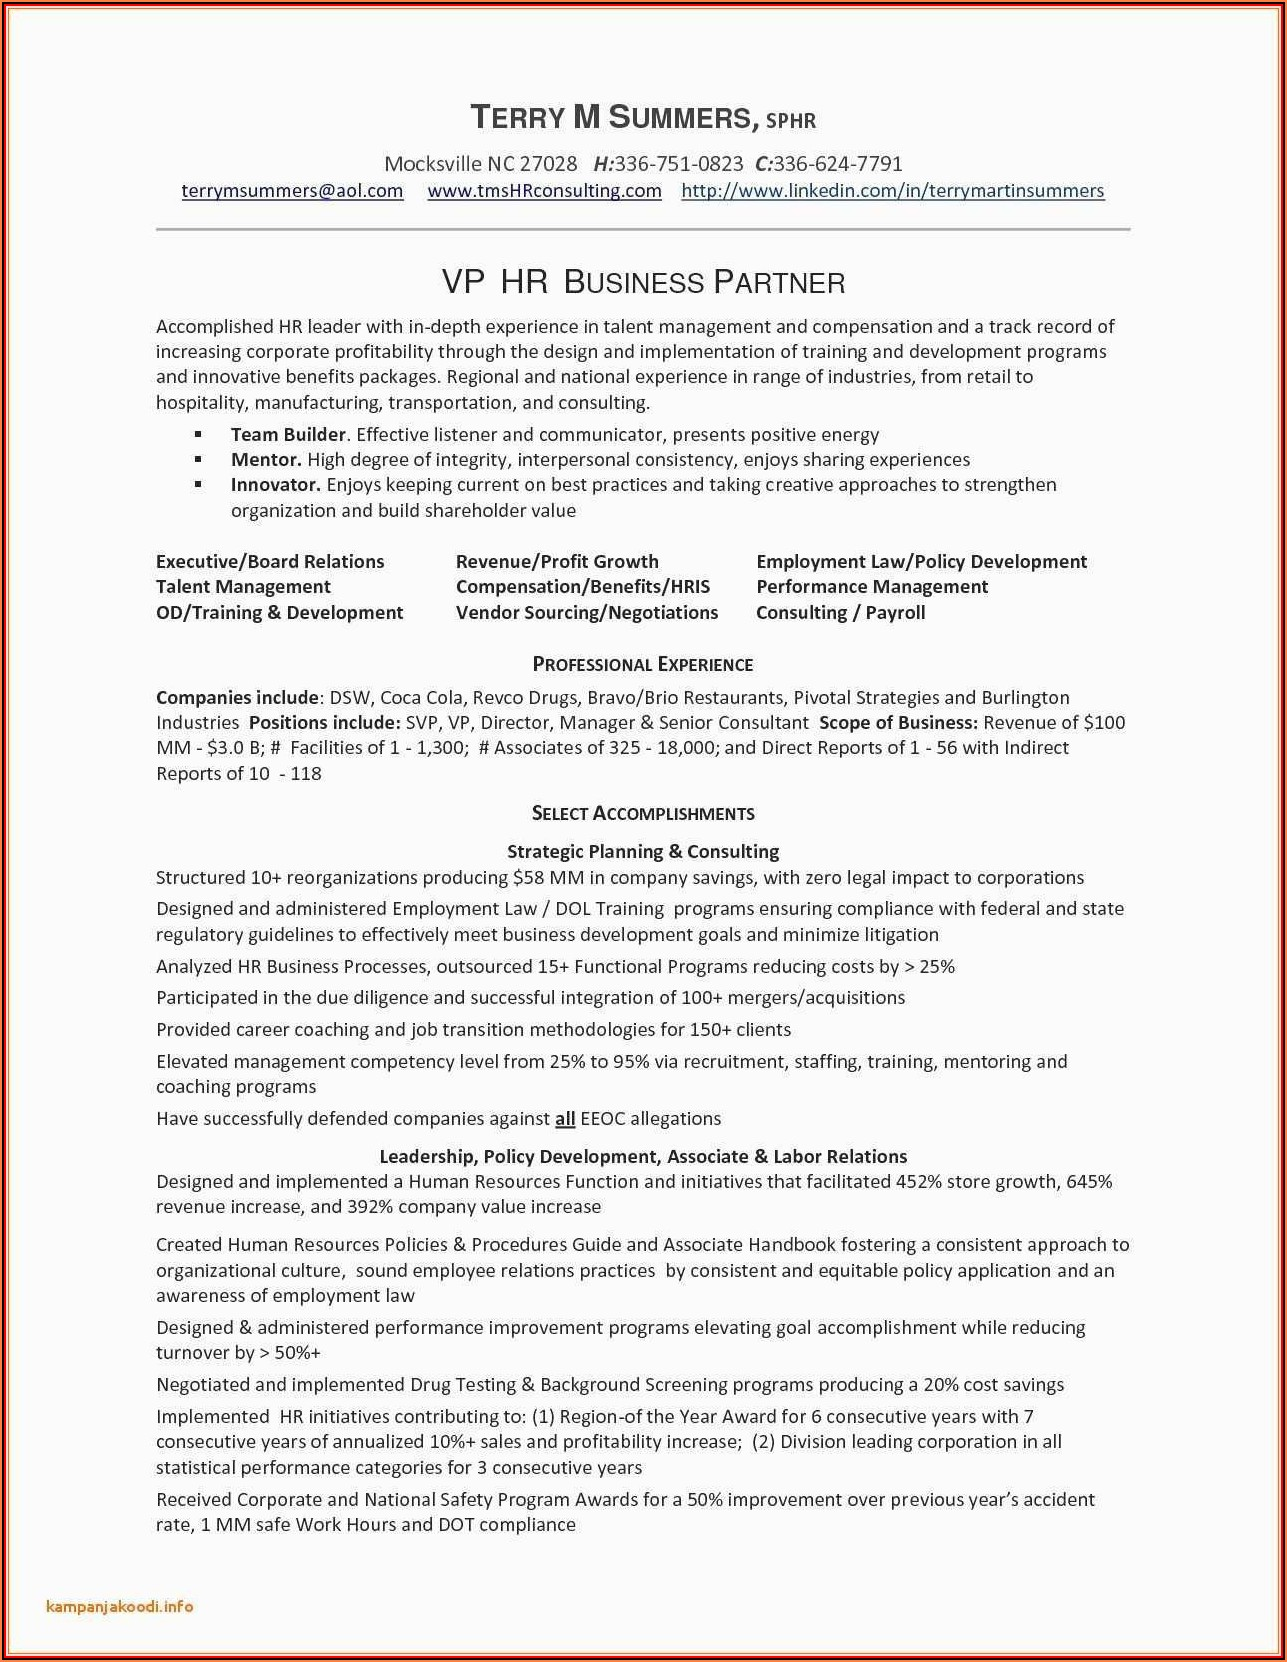 90 Day Business Plan Template For Interview